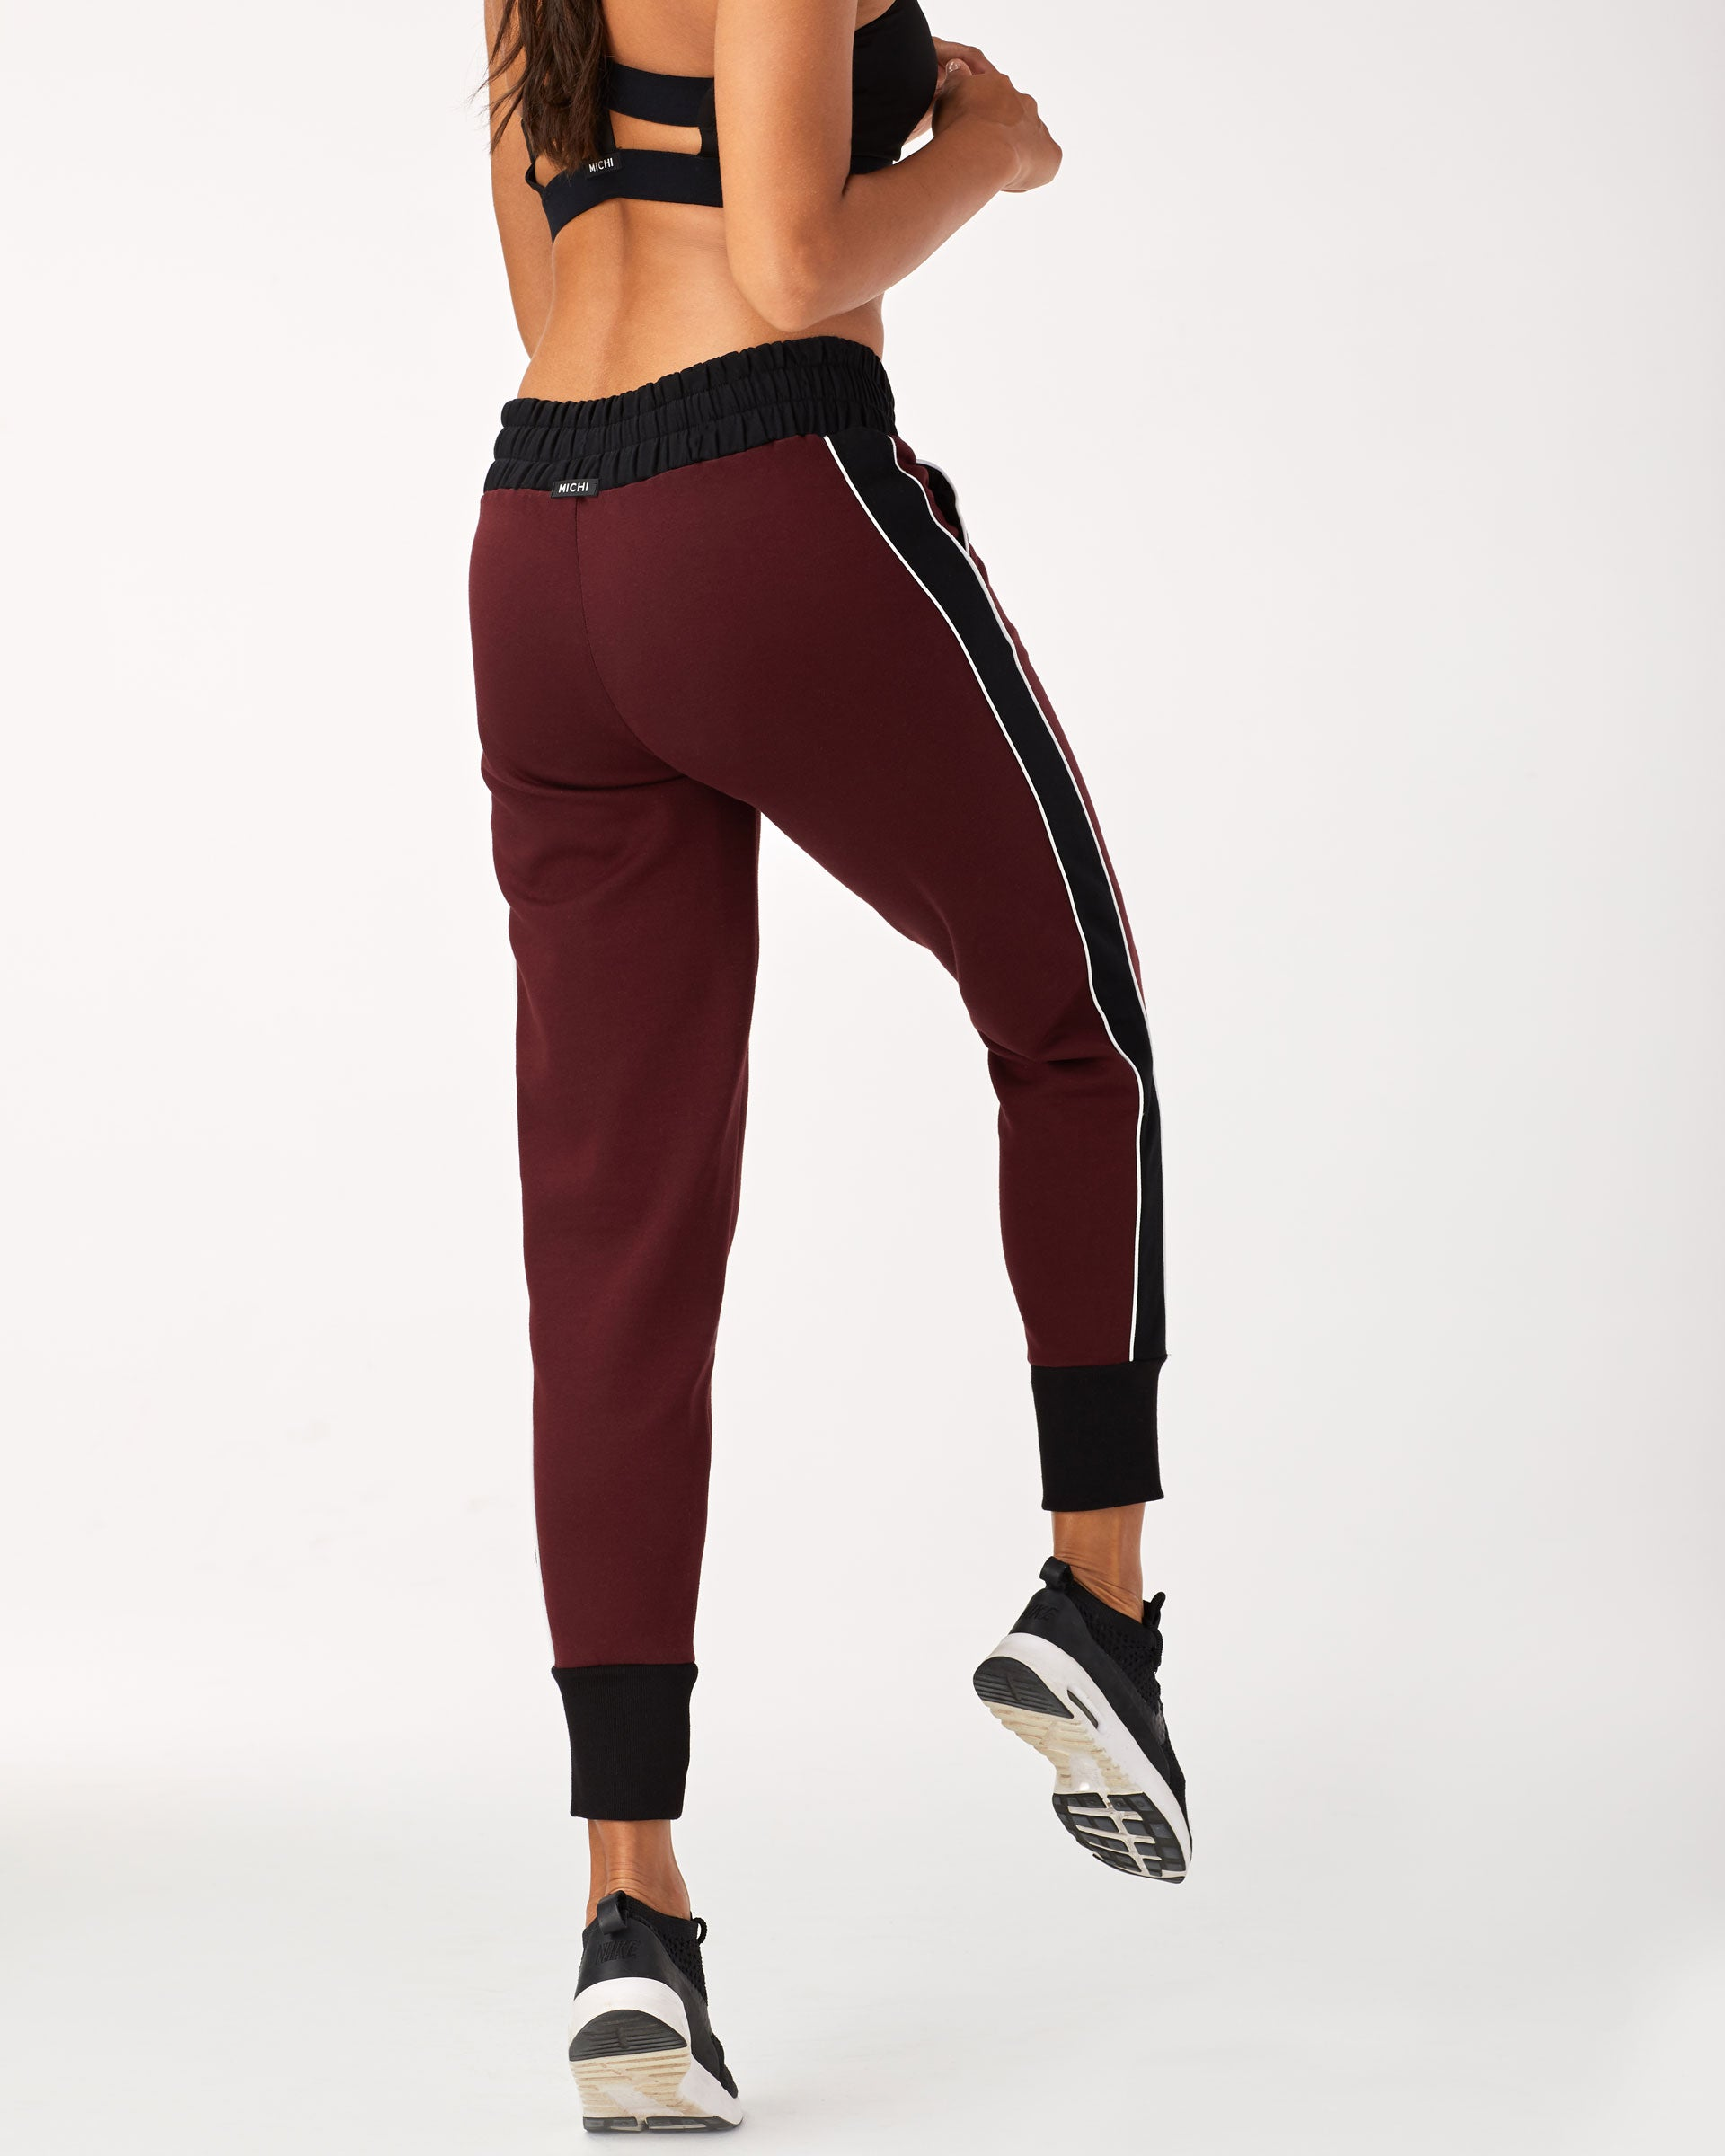 Interstellar Sweatpant - Wine/Black/White